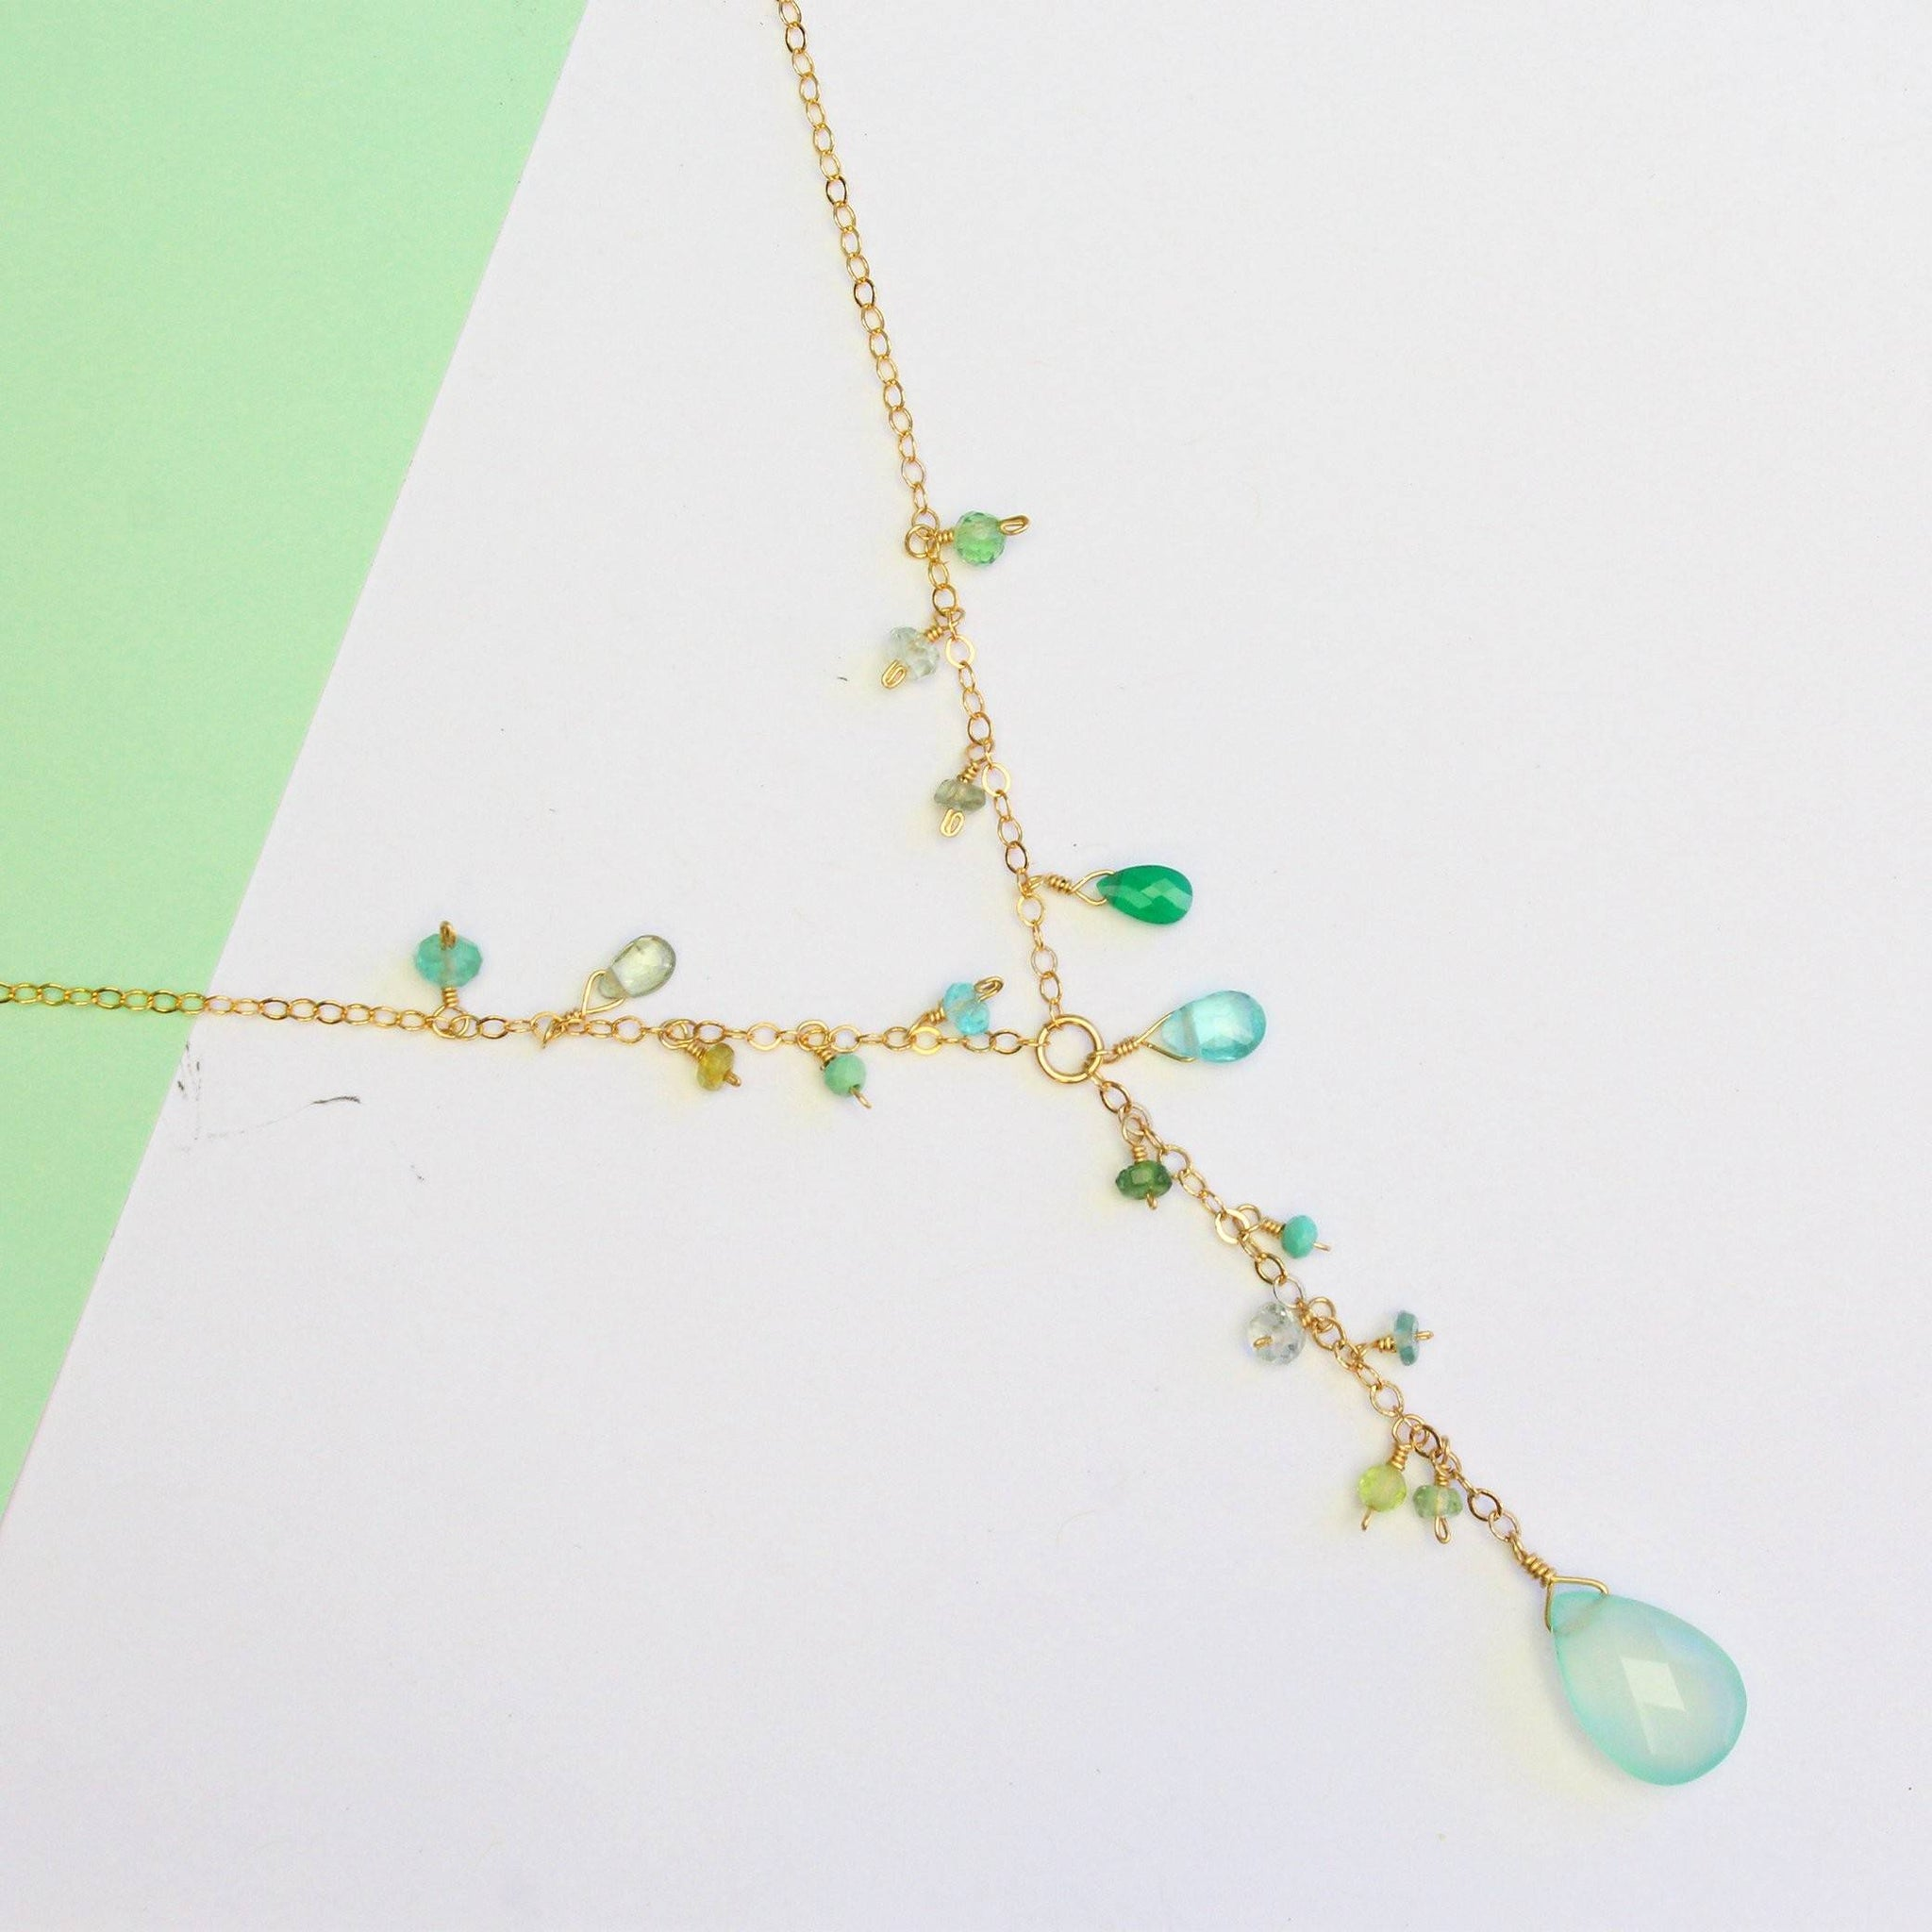 Luxe Treasure Necklace: Summer Waves